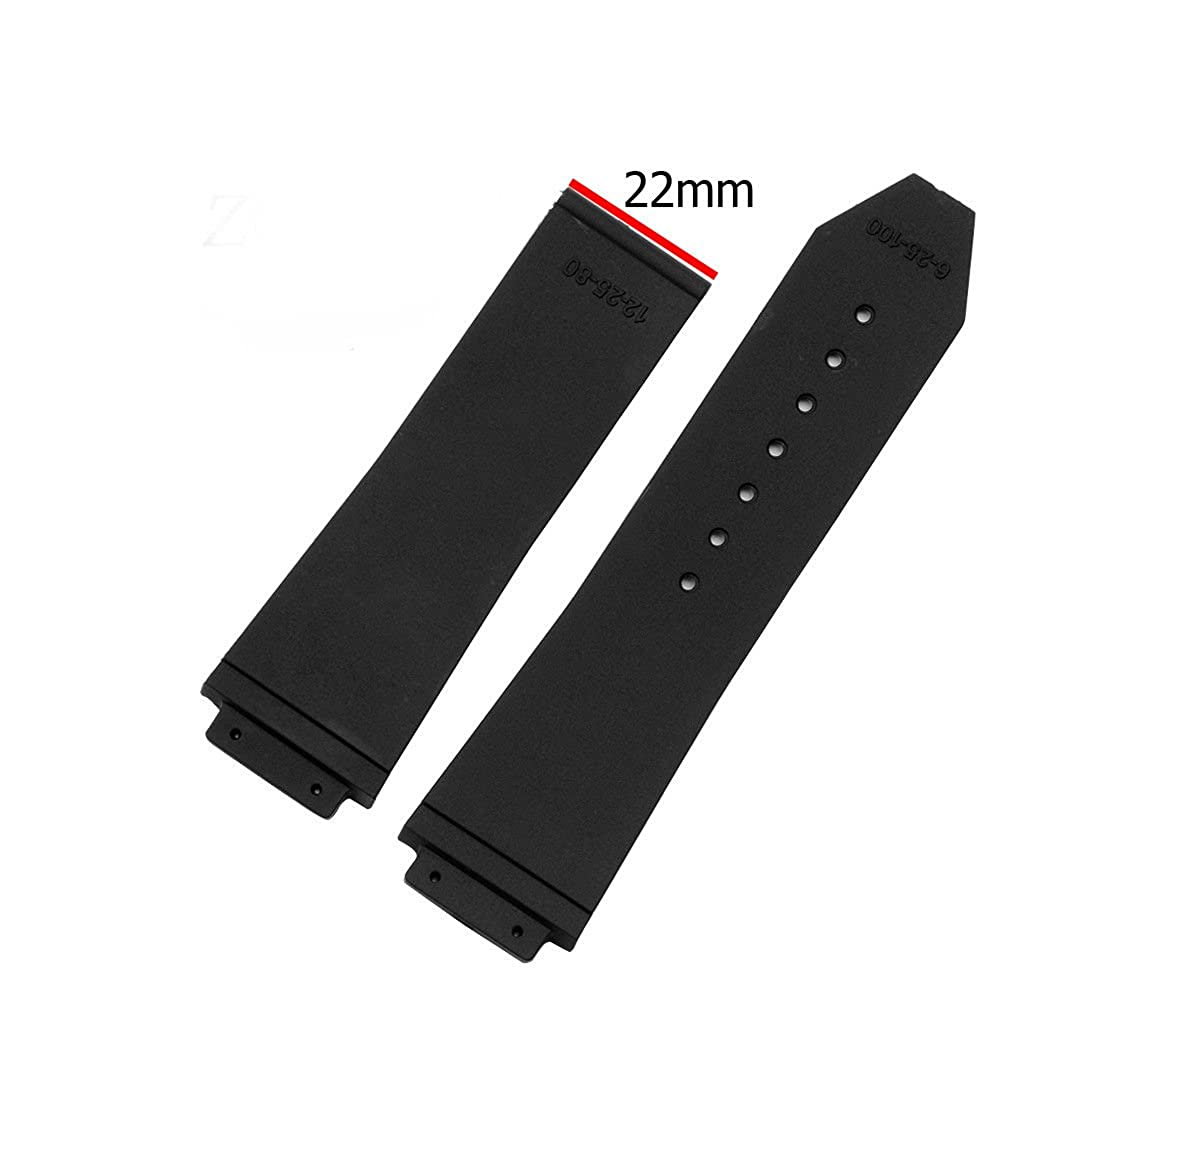 26mm x 19mm Black Strap to Fit Hublot Big Bang Tier Mens Watch Band Replacement Strap | Amazon.com